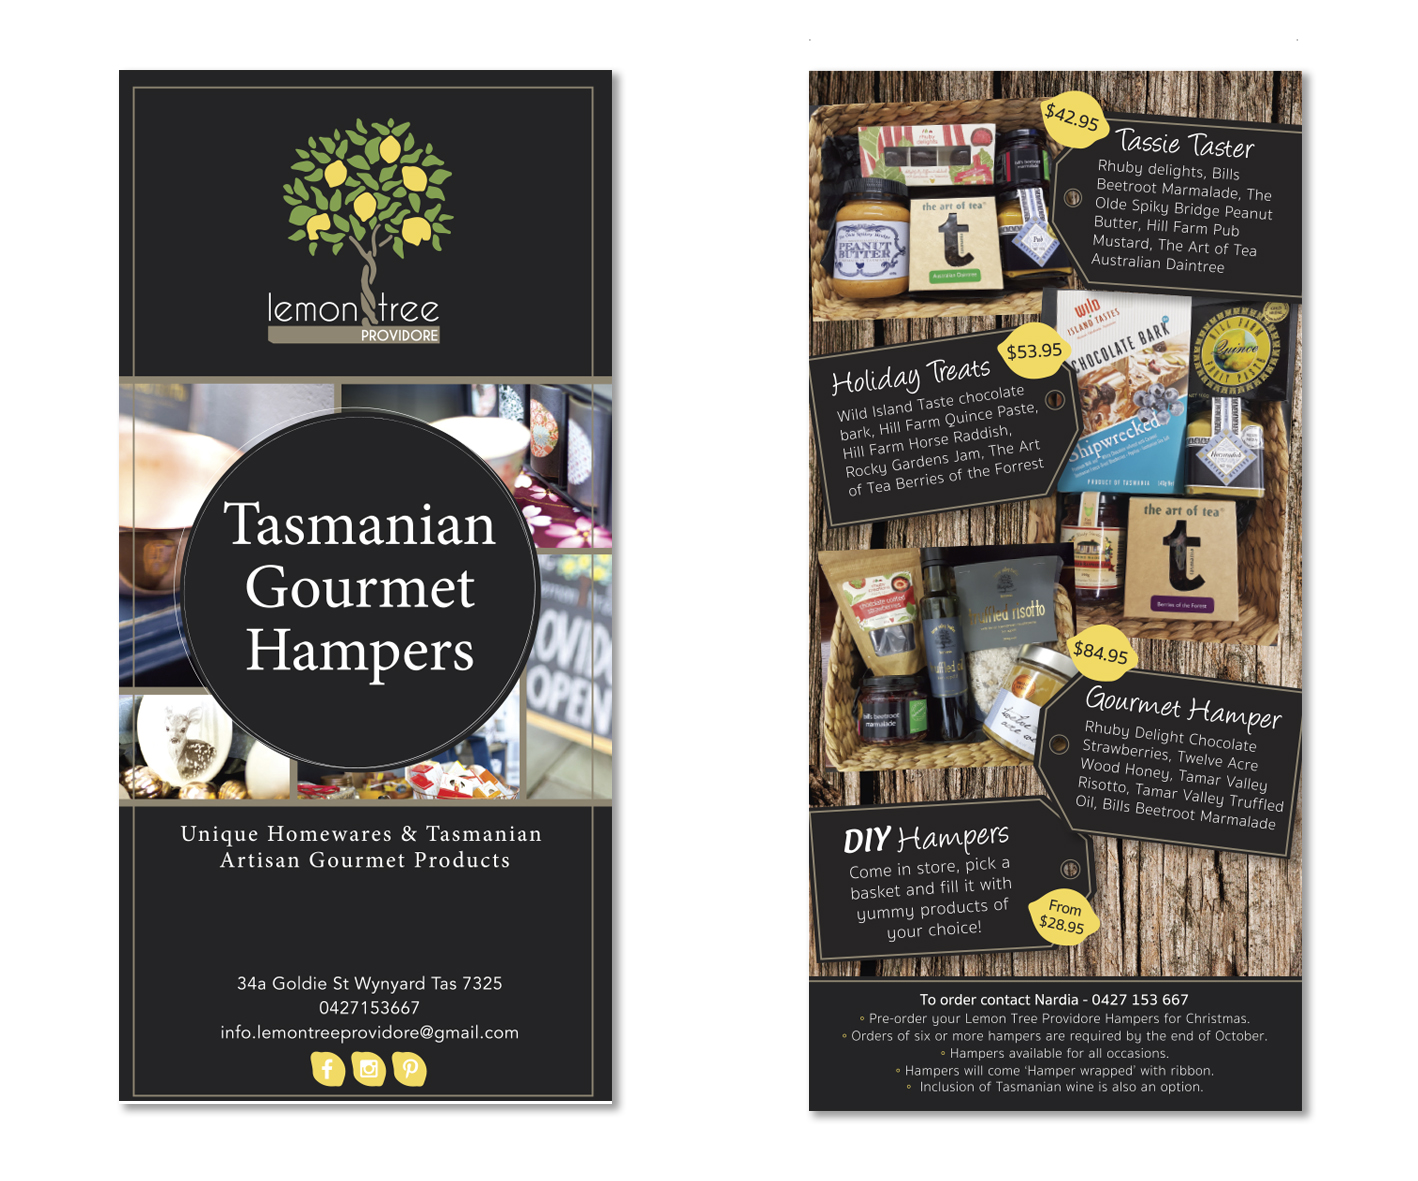 logo design and business branding and print design by graphic designer Lara Hardy from Billie Hardy Creative